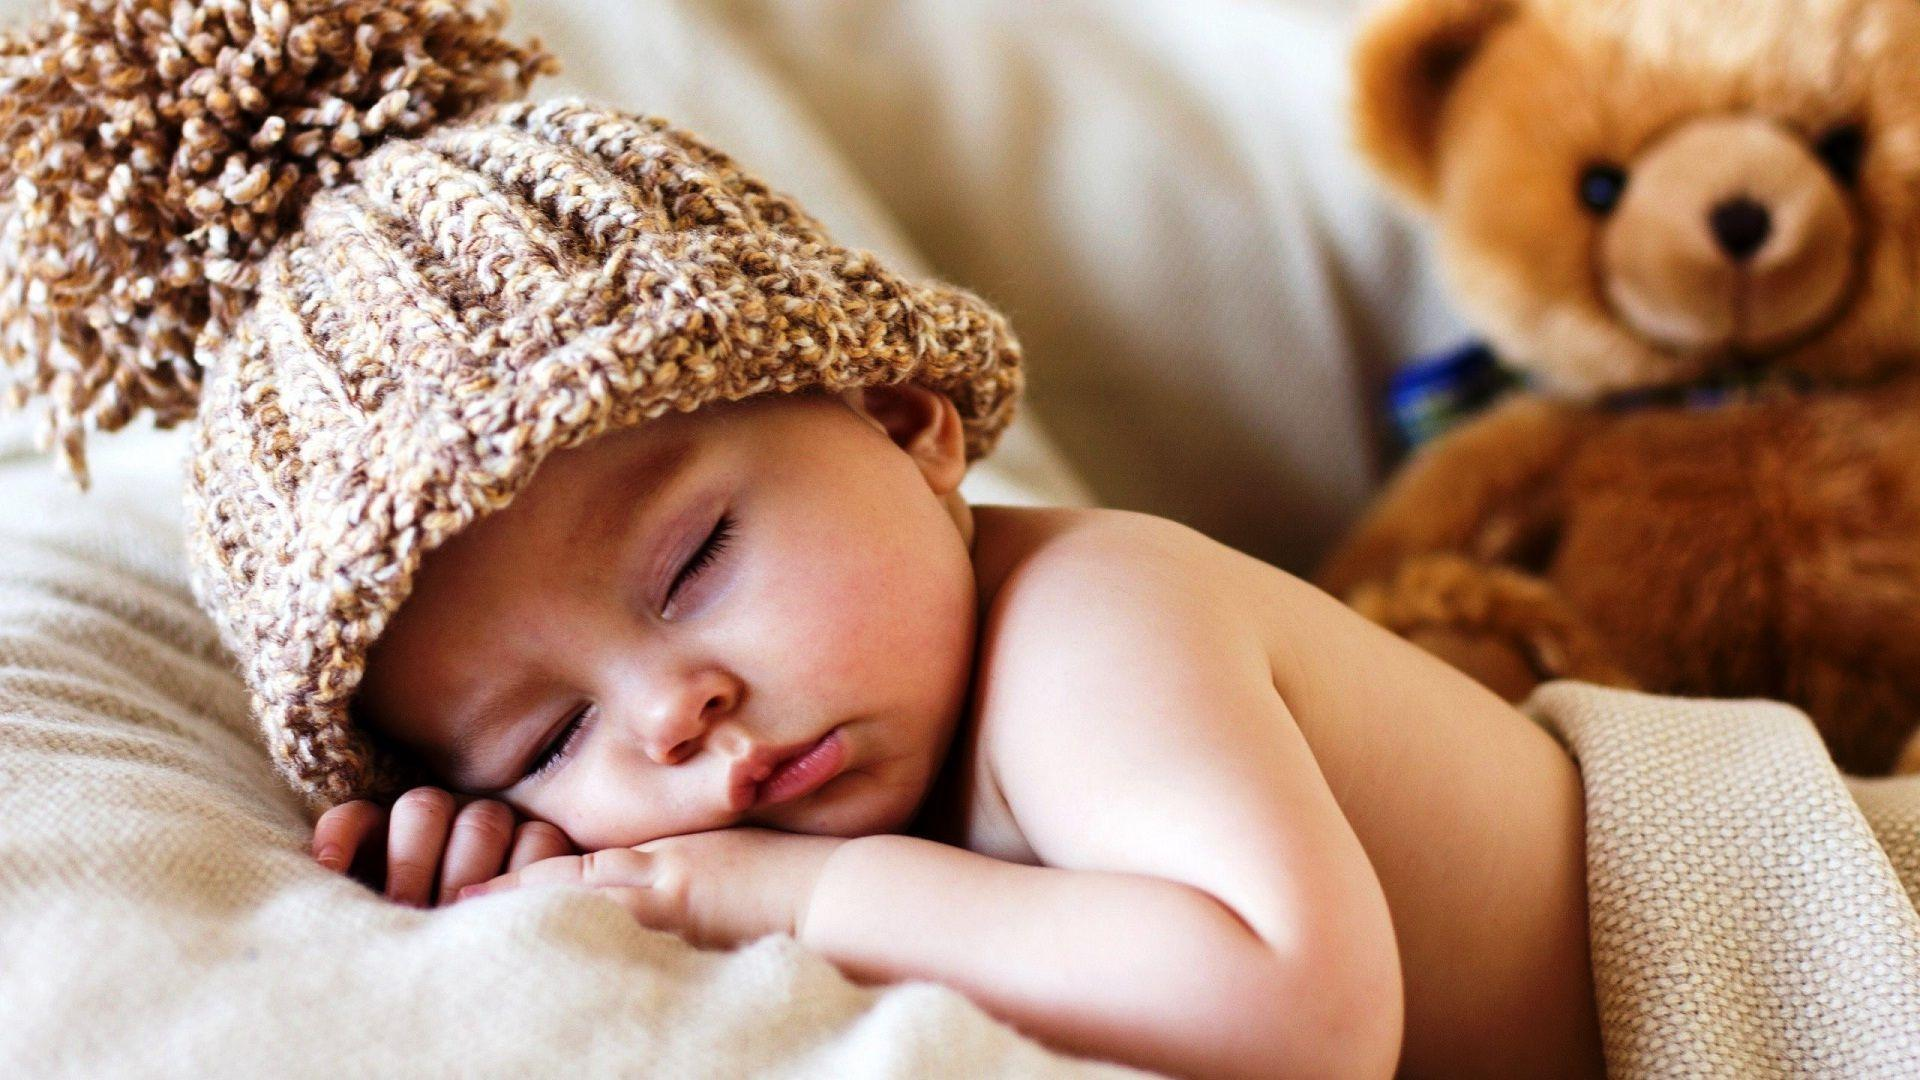 sleeping new born baby nice pics - Simply Wallpaper - Just choose ...